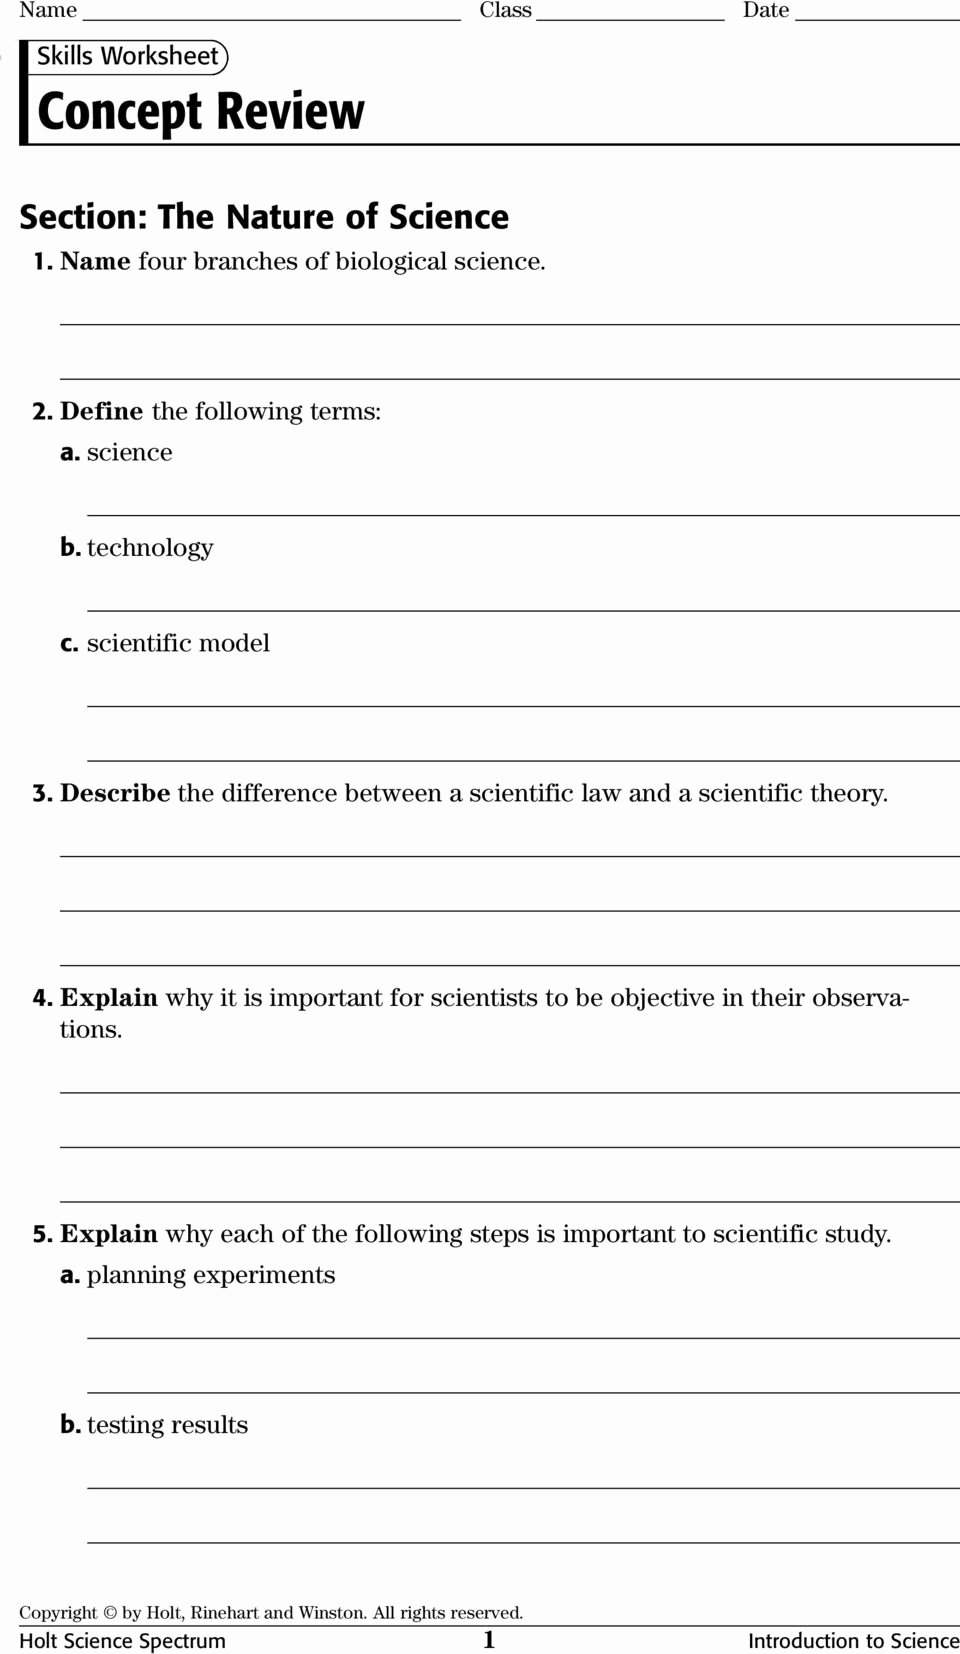 Food Inc Worksheet Answers Elegant Food Inc Movie Worksheet Answers Yooob